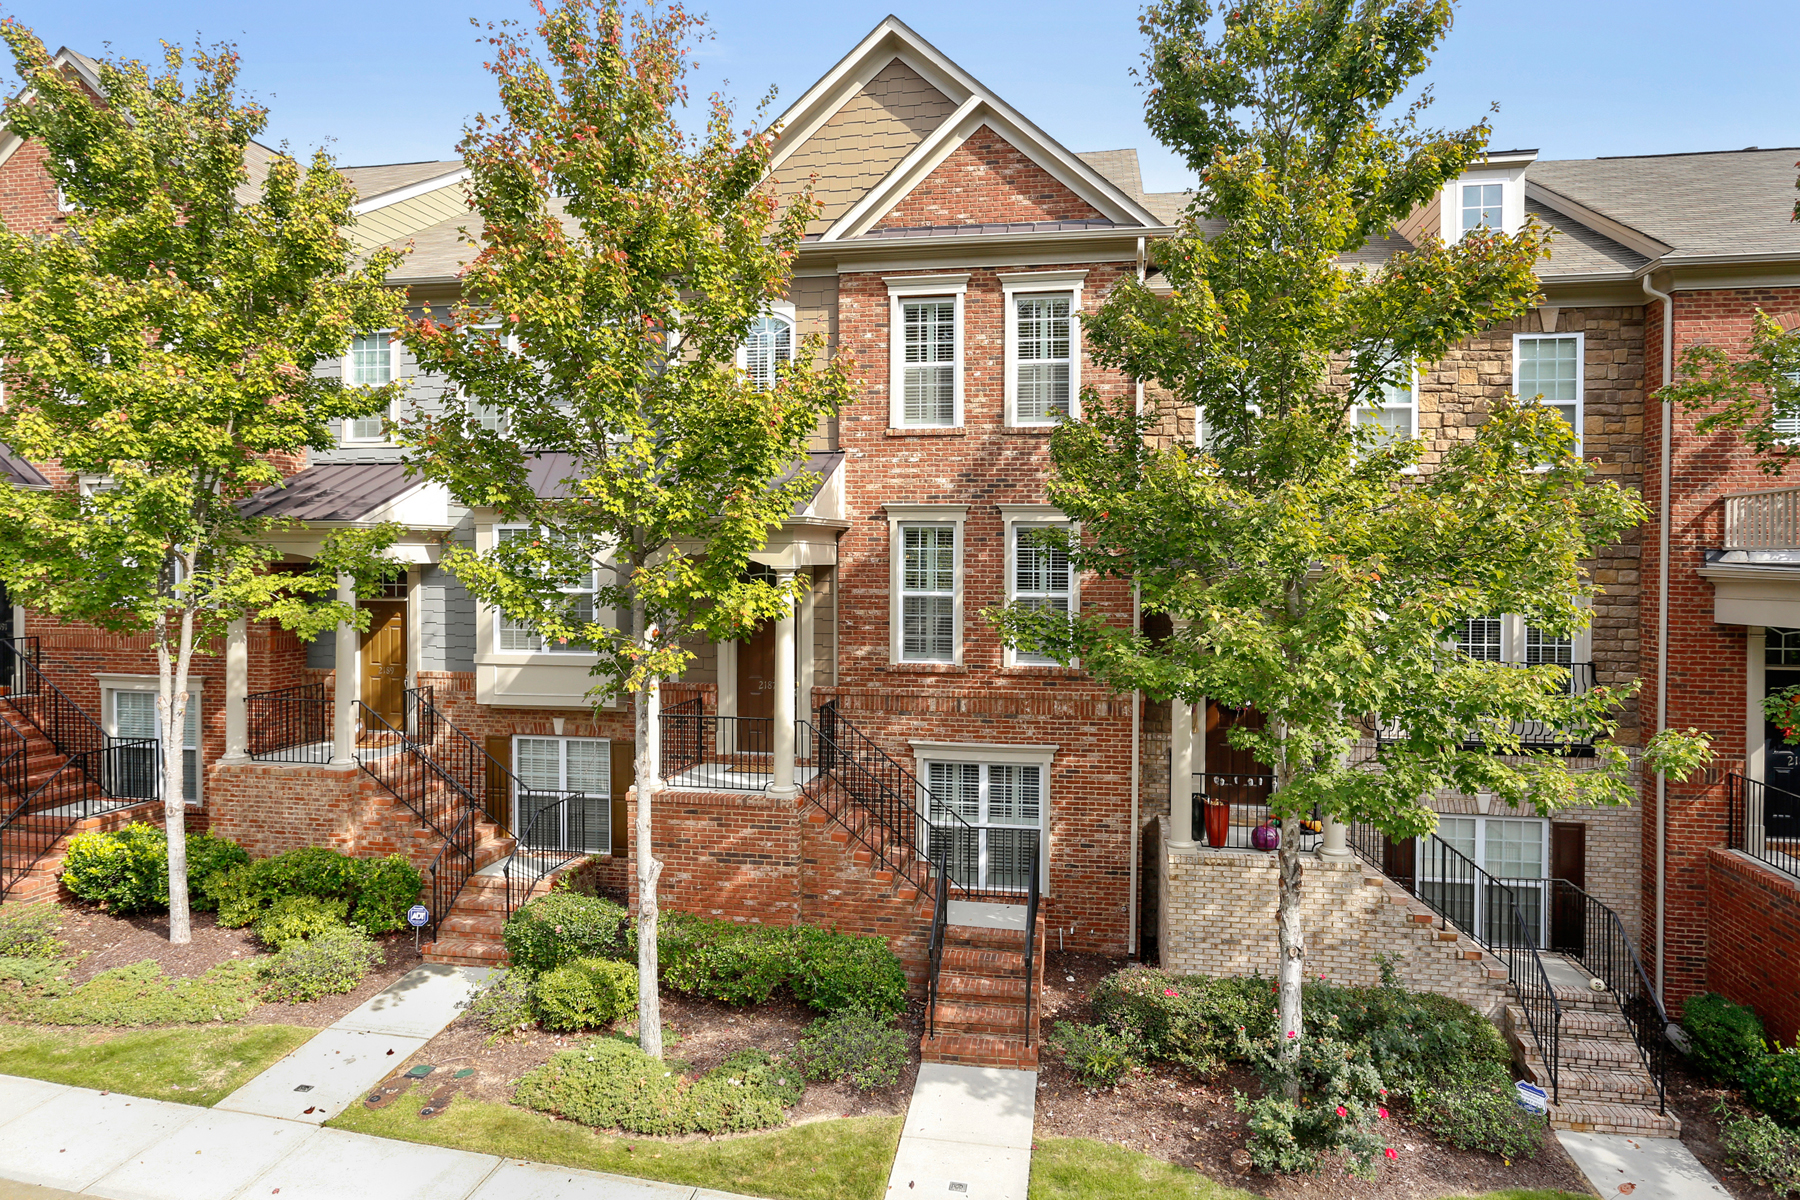 联栋屋 为 销售 在 Pristine Townhome In The Heart Of Brookhaven 2187 Weldonberry Drive 亚特兰大, 乔治亚州, 30319 美国